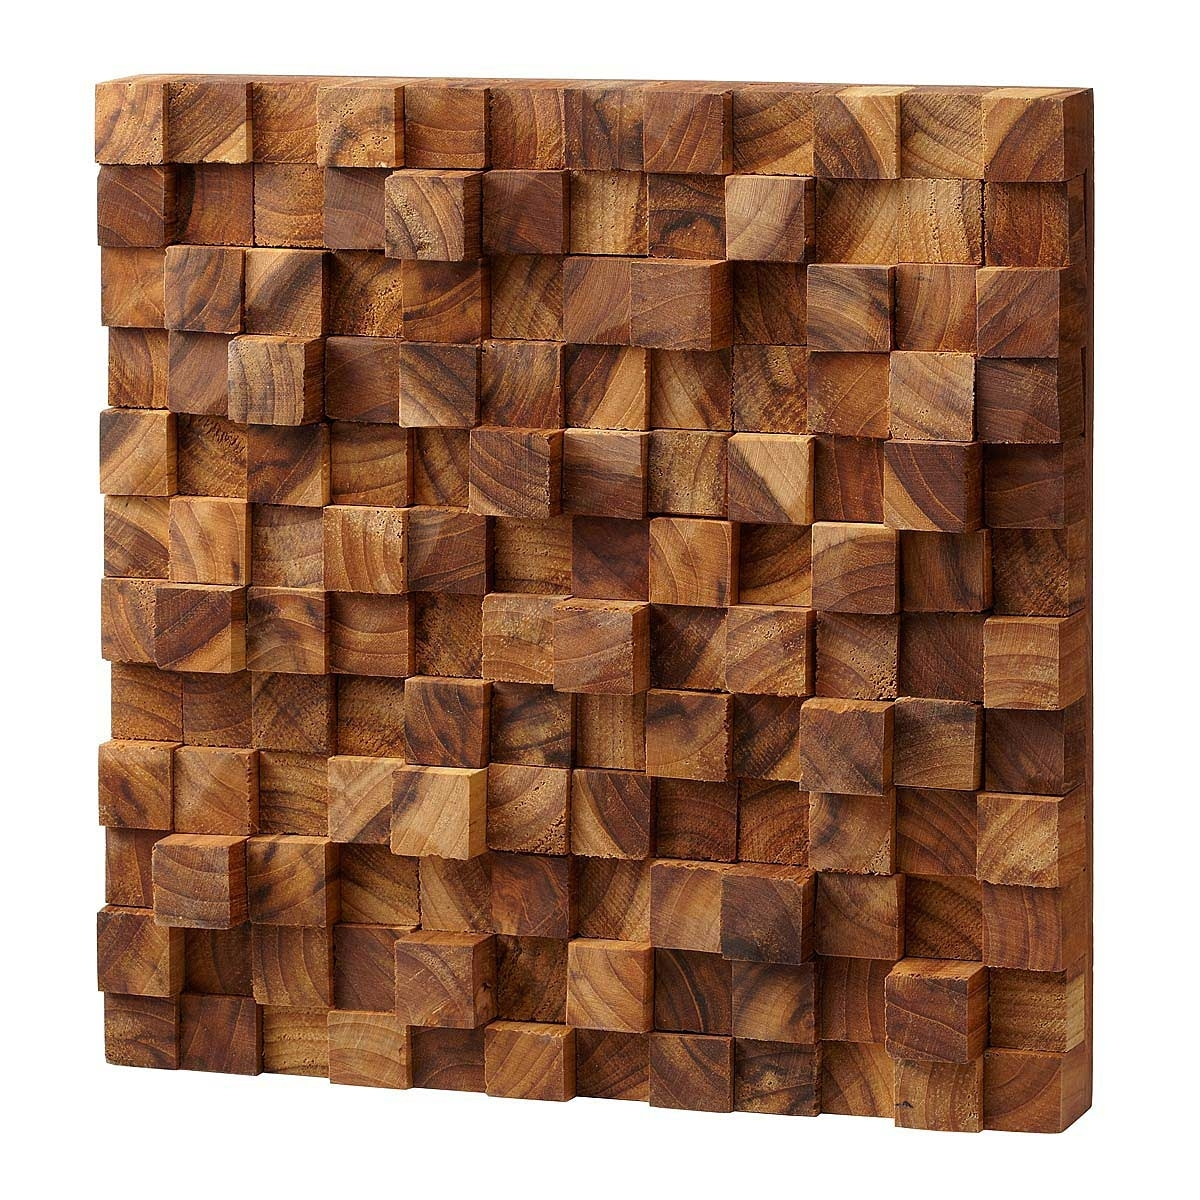 Square Takara Wall Art | Teak Wood, 3D Art | Uncommongoods Pertaining To Best And Newest Wooden Wall Art (Gallery 2 of 15)